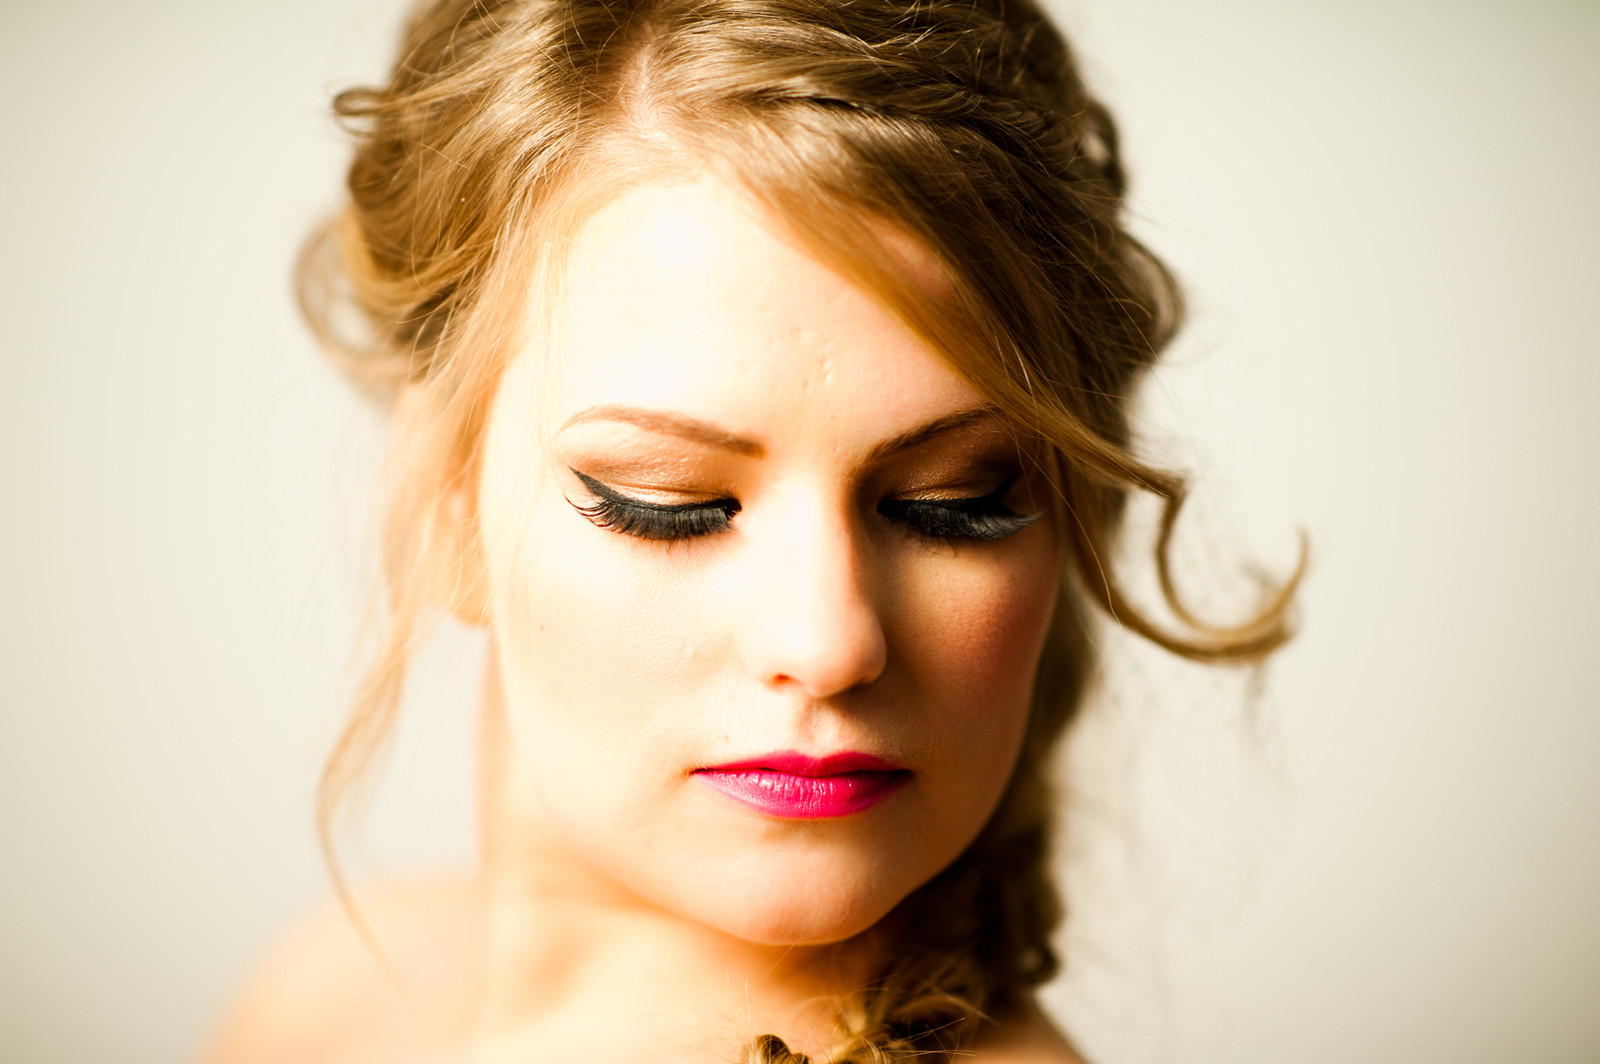 REFEYEANCE Makeup & Hair LLC- Award Winning Makeup Artists & Bridal Hair Stylists.